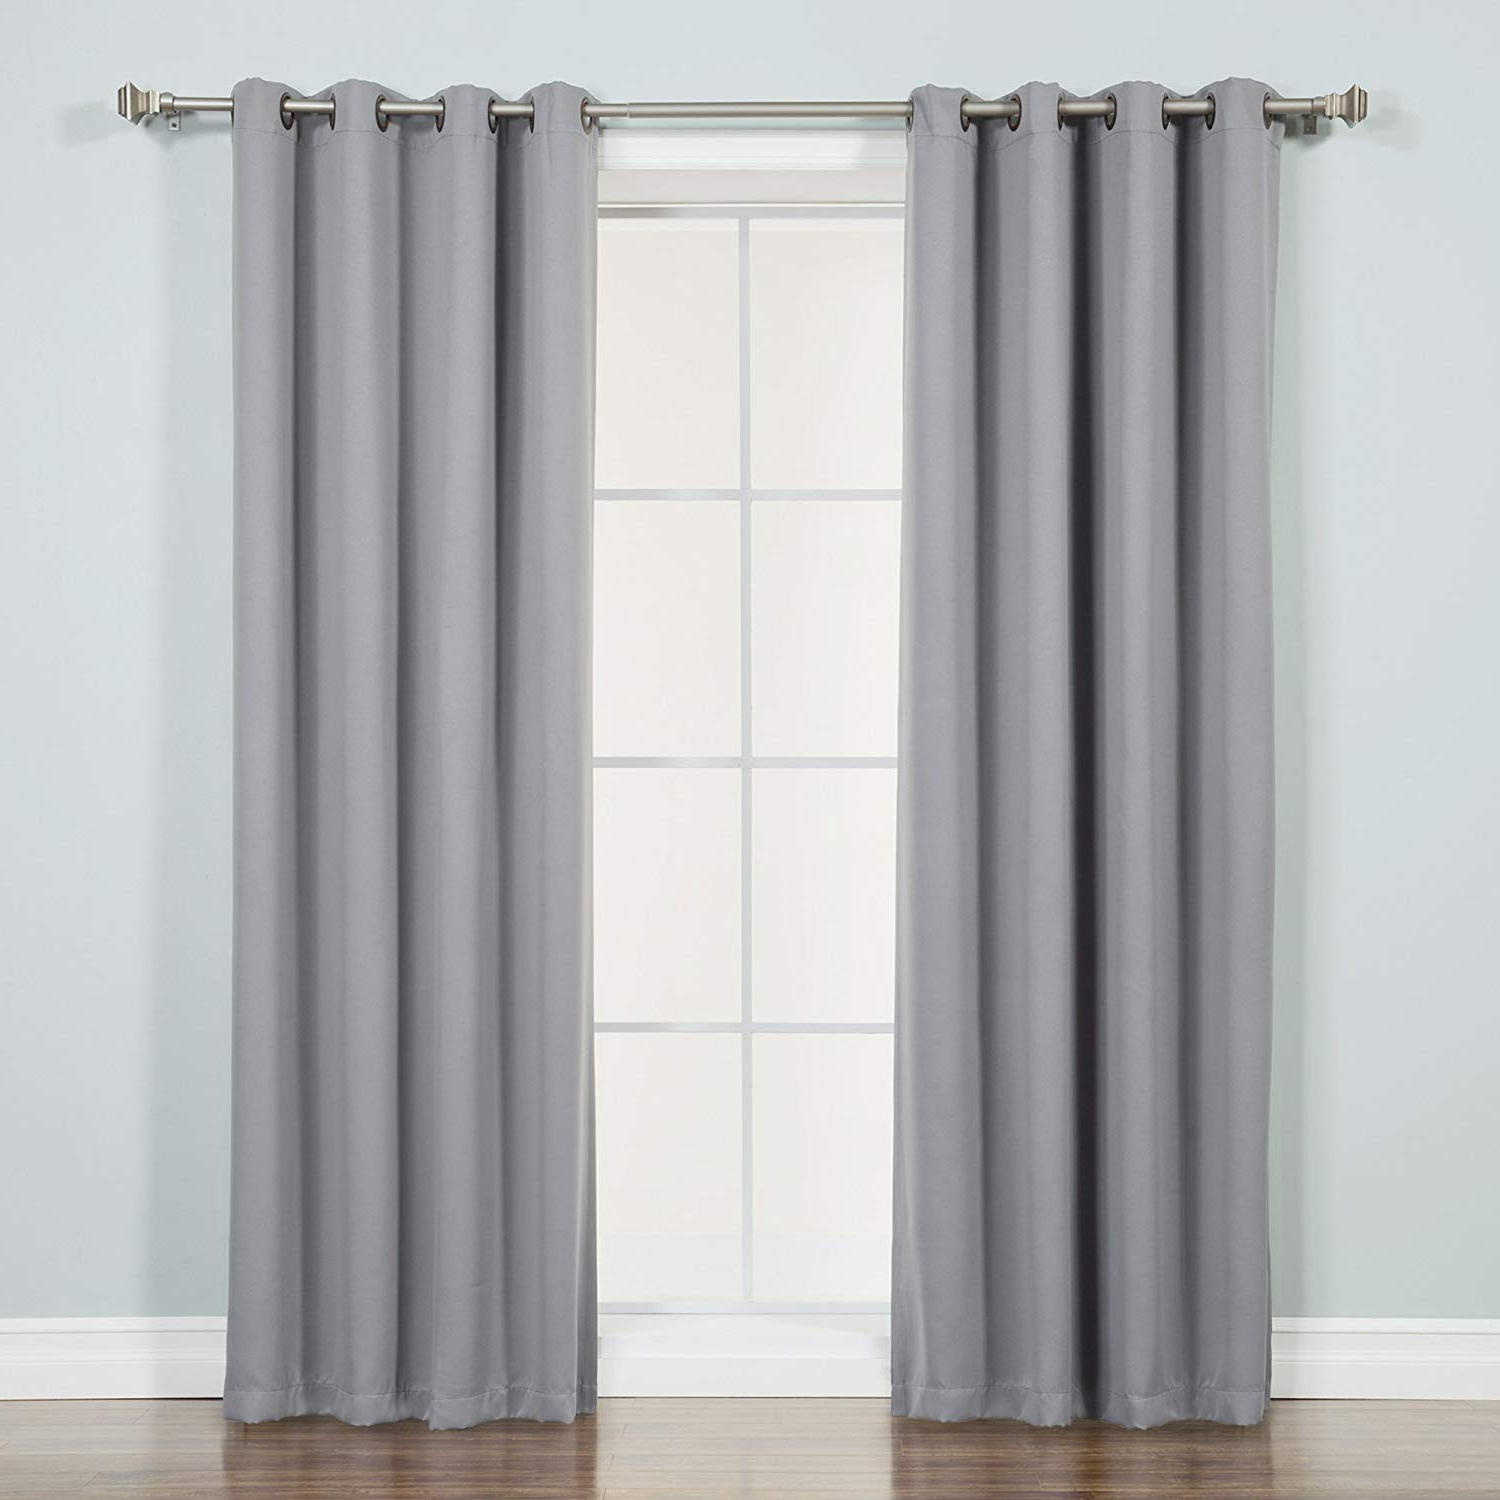 "Best Home Fashion Thermal Insulated Blackout Curtains – Antique Bronze Grommet Top – Grey – 52""w X 72""l – (set Of 2 Panels) Intended For Most Popular Antique Silver Grommet Top Thermal Insulated Blackout Curtain Panel Pairs (View 11 of 20)"